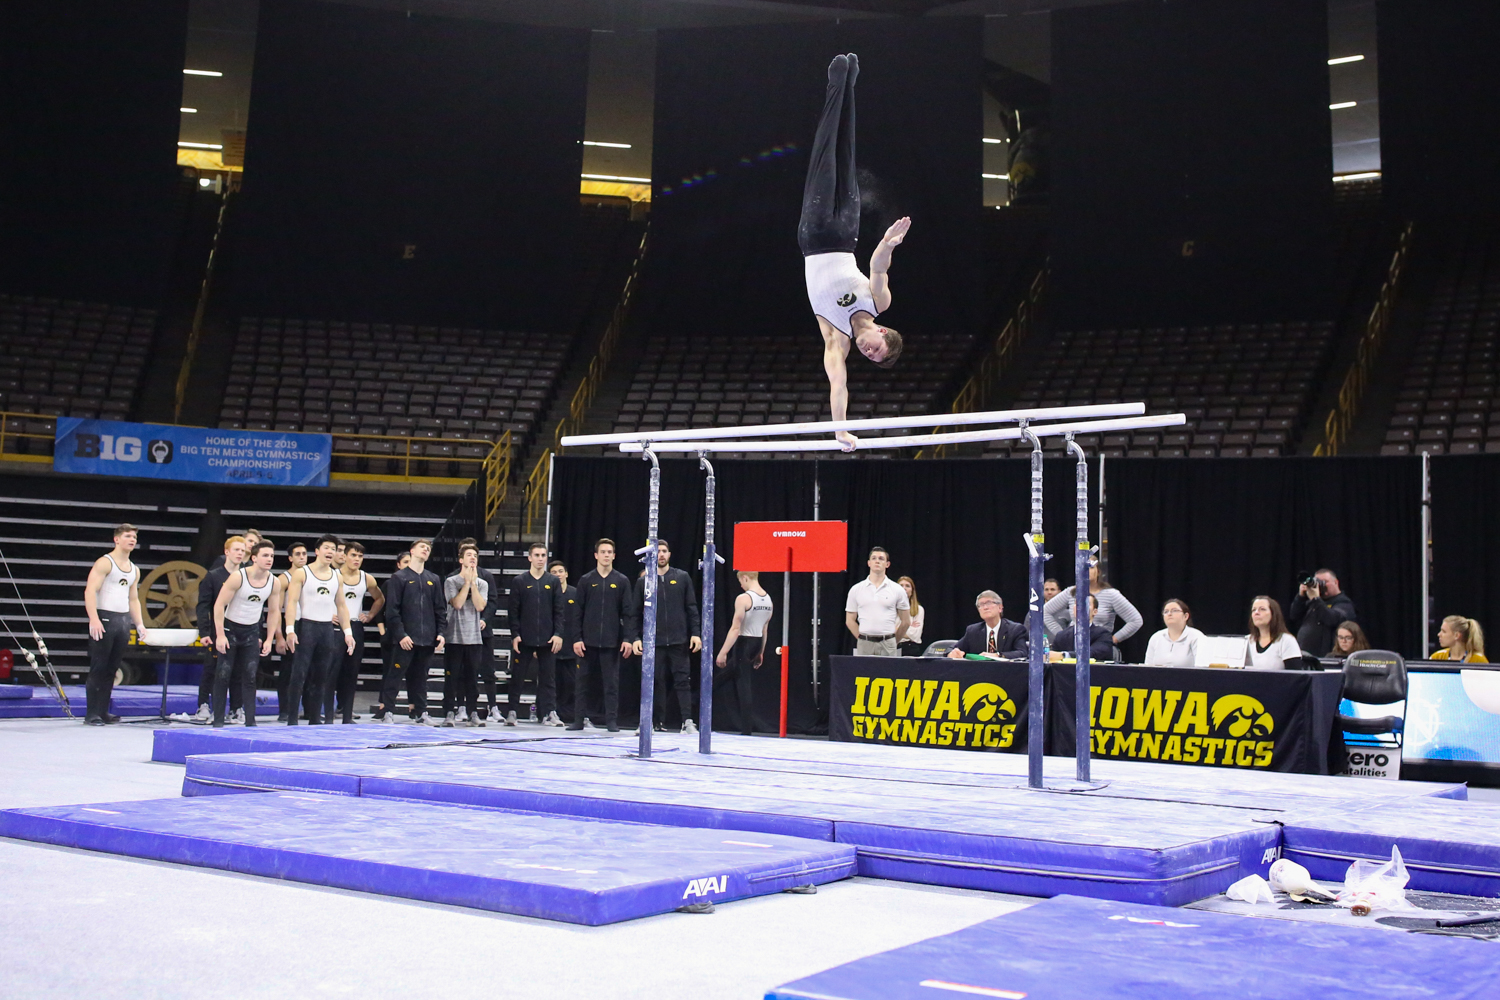 Iowa gymnast Rogelio Vazquez performs on the parallel bars during a gymnastics meet against Minnesota and Illinois-Chicago on Saturday, Feb 2, 2019. The Golden Gophers won the meet with a total score of 406.400 with the Hawkeyes scoring 401.600 and the Flames scoring 355.750.